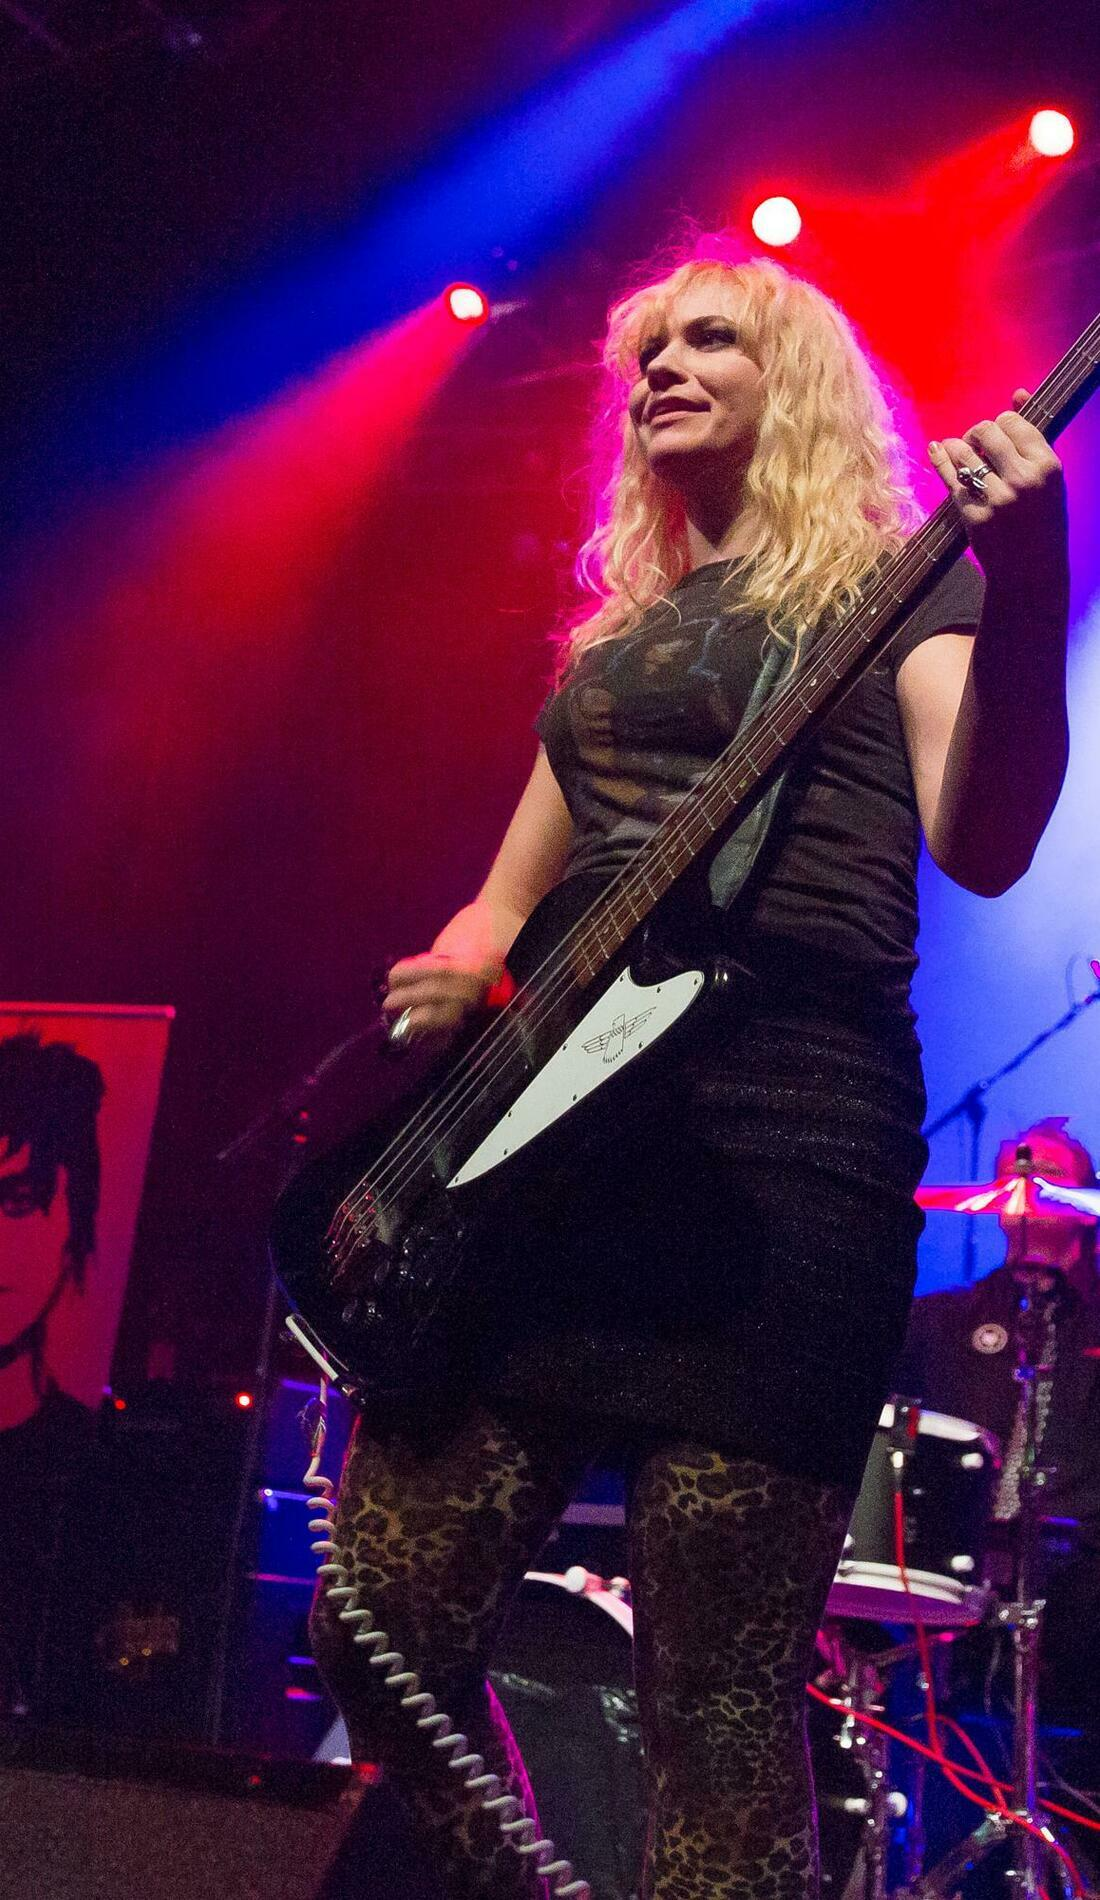 A The Dollyrots live event